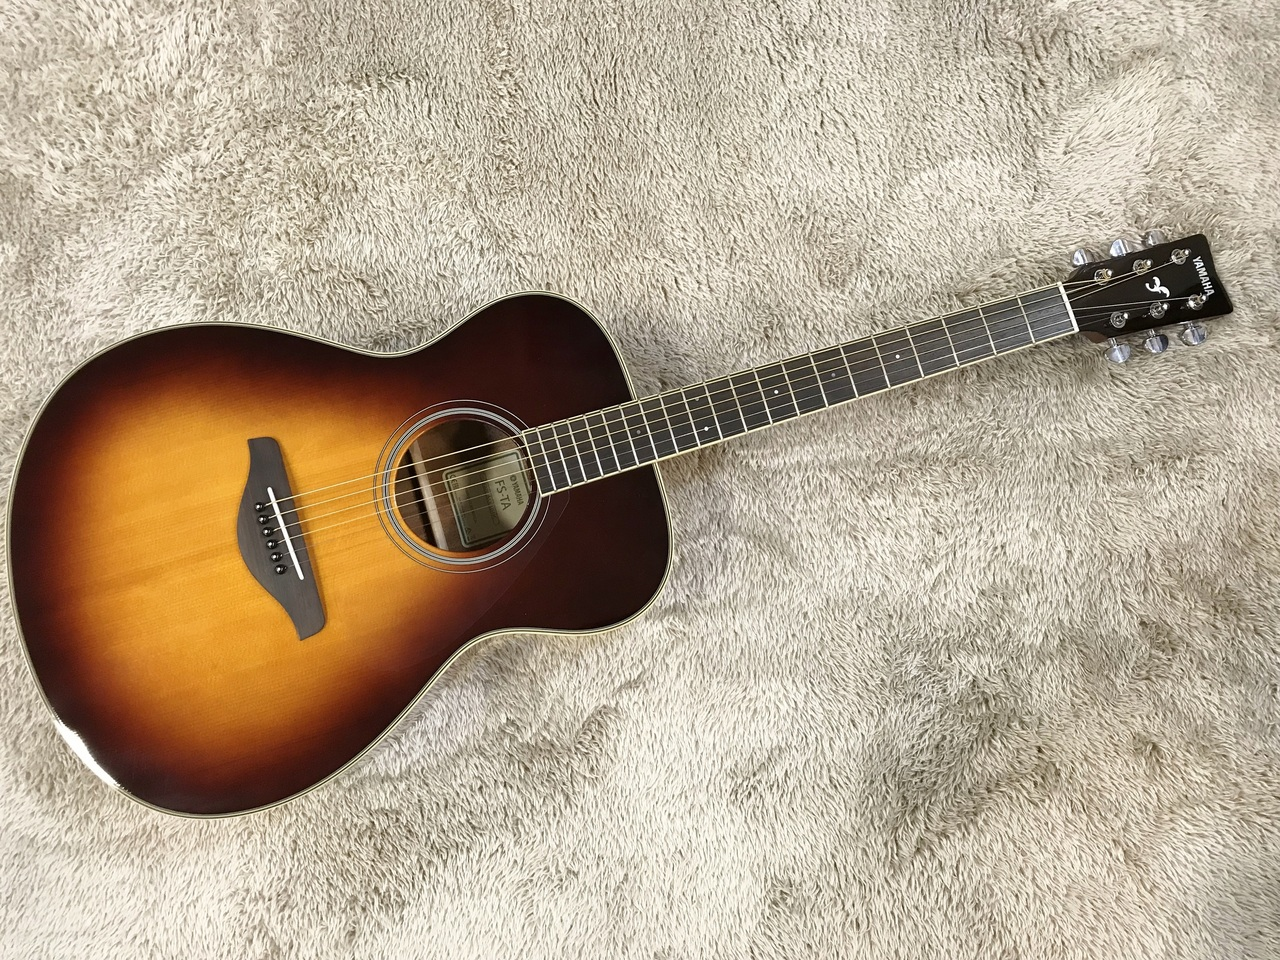 YAMAHA TransAcoustic FS-TA BS (Brown Sunburst) Outlet Specials]